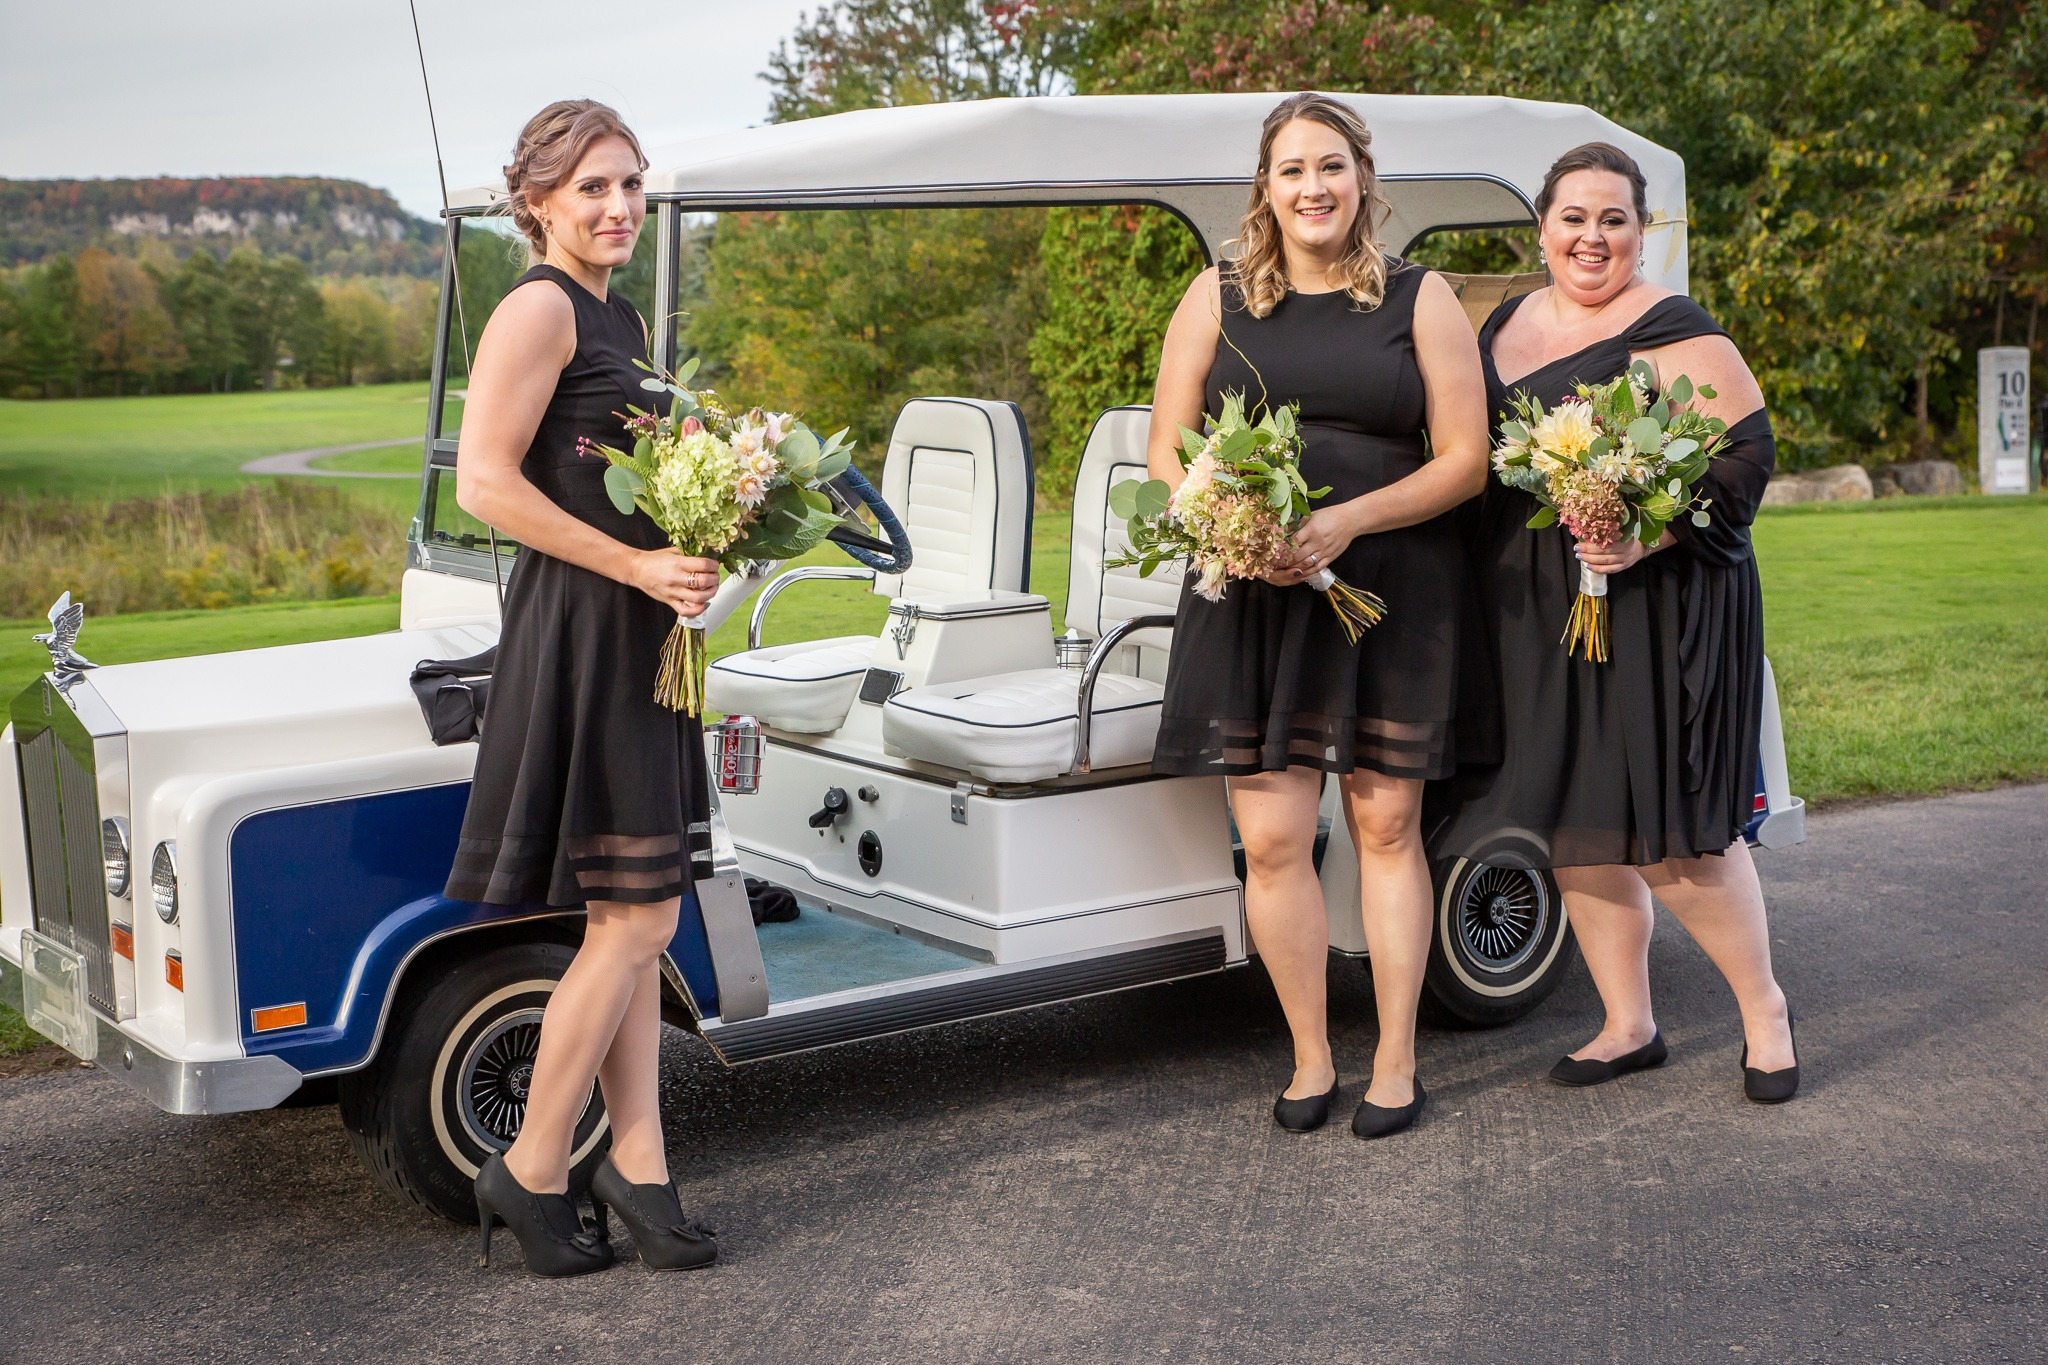 bridesmaids in black dresses on golf course